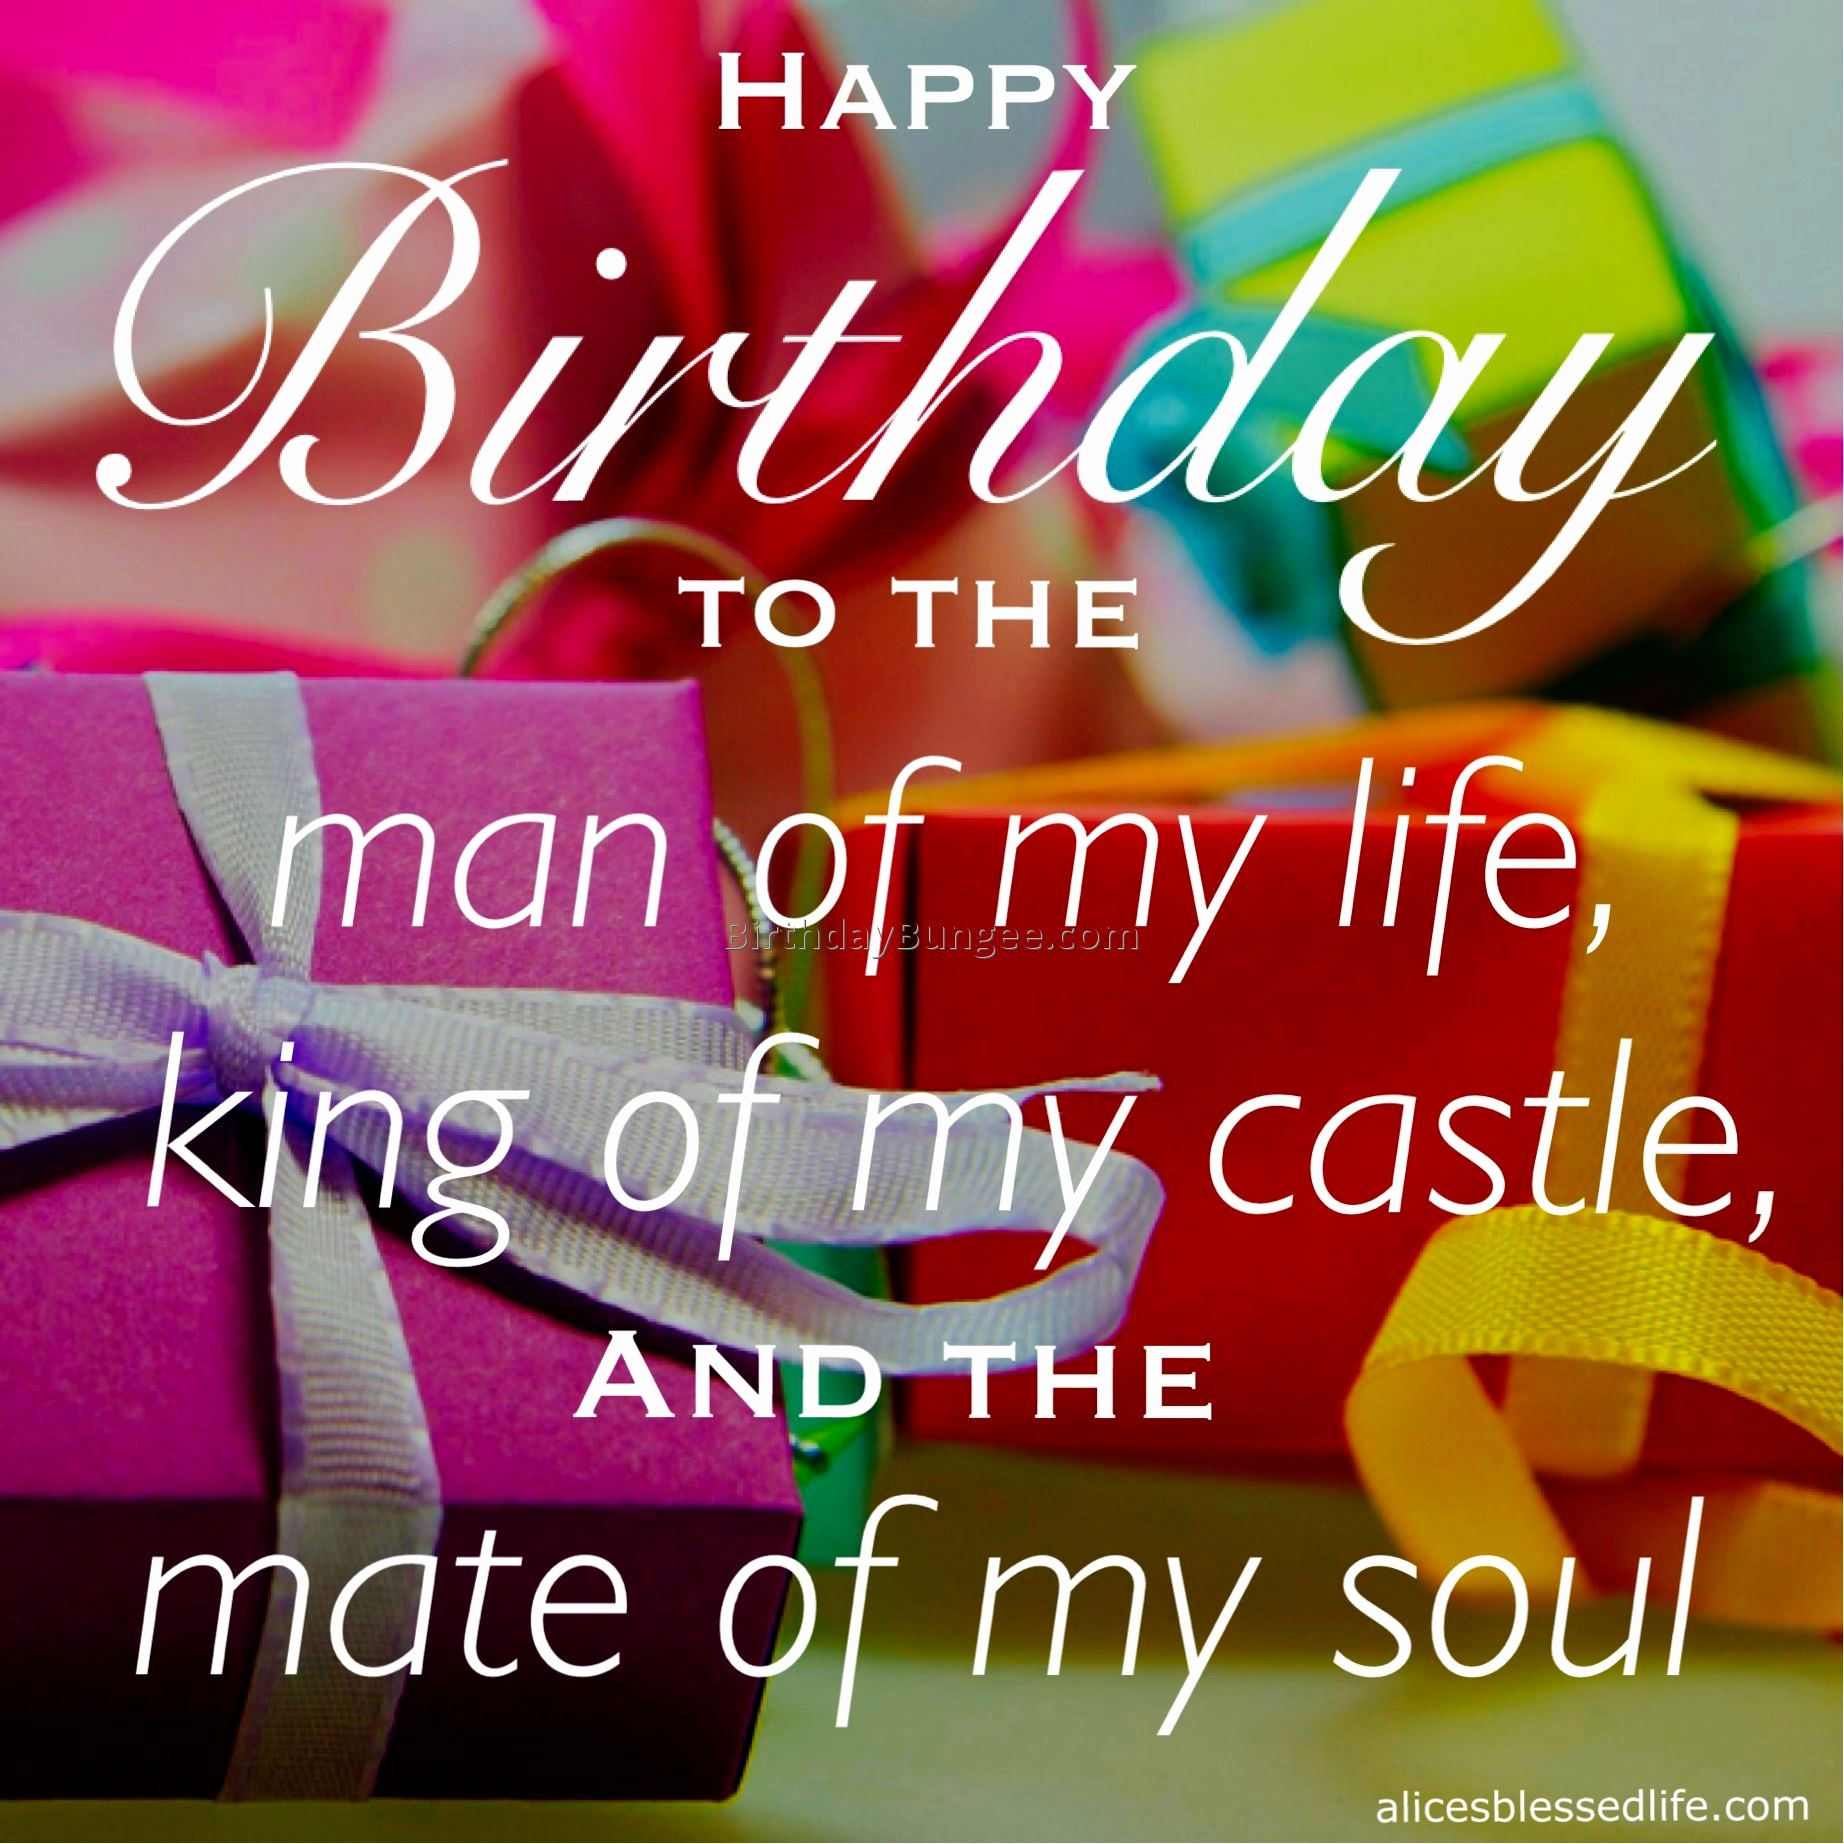 happy birthday husband quotes ; funny-happy-birthday-husband-quotes-awesome-happy-birthday-to-my-husband-funny-quotes-3-of-funny-happy-birthday-husband-quotes